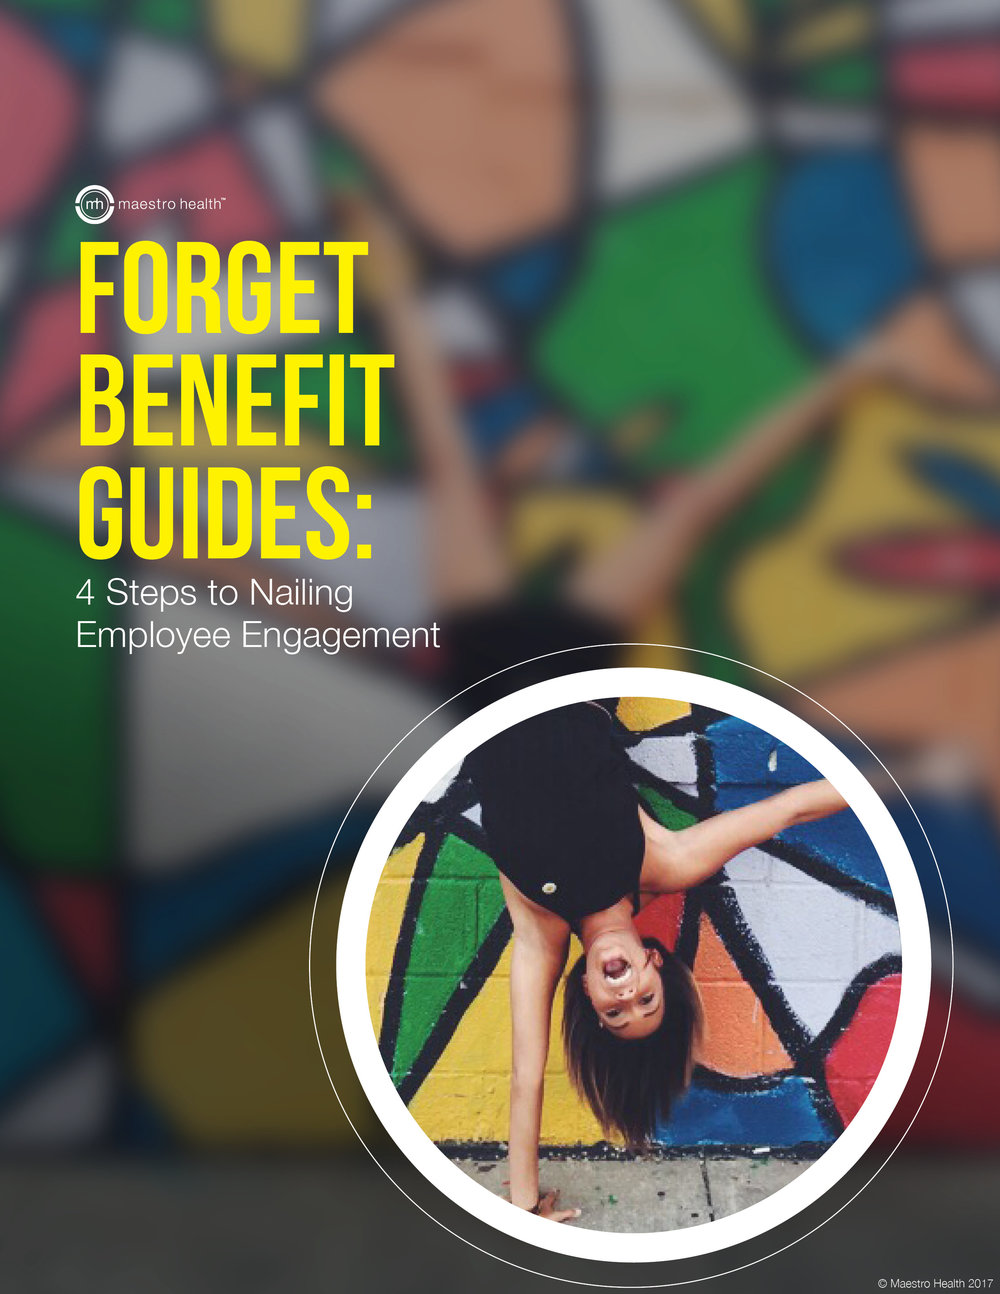 m9009_BenAccts_EmployeeEngagement_Whitepaper_082417_r12.jpg